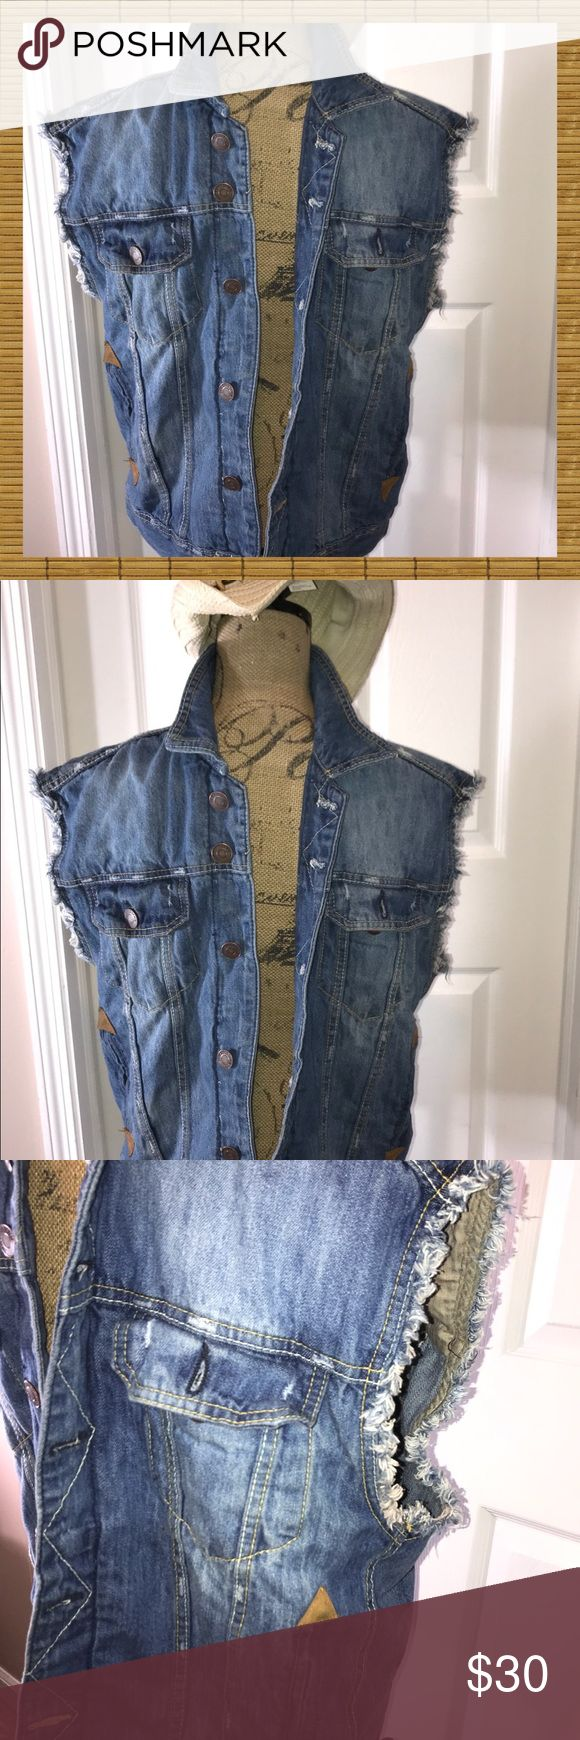 MENS Denim vest Sz Medium EUC Mperious supreme quality hundred percent cotton me…